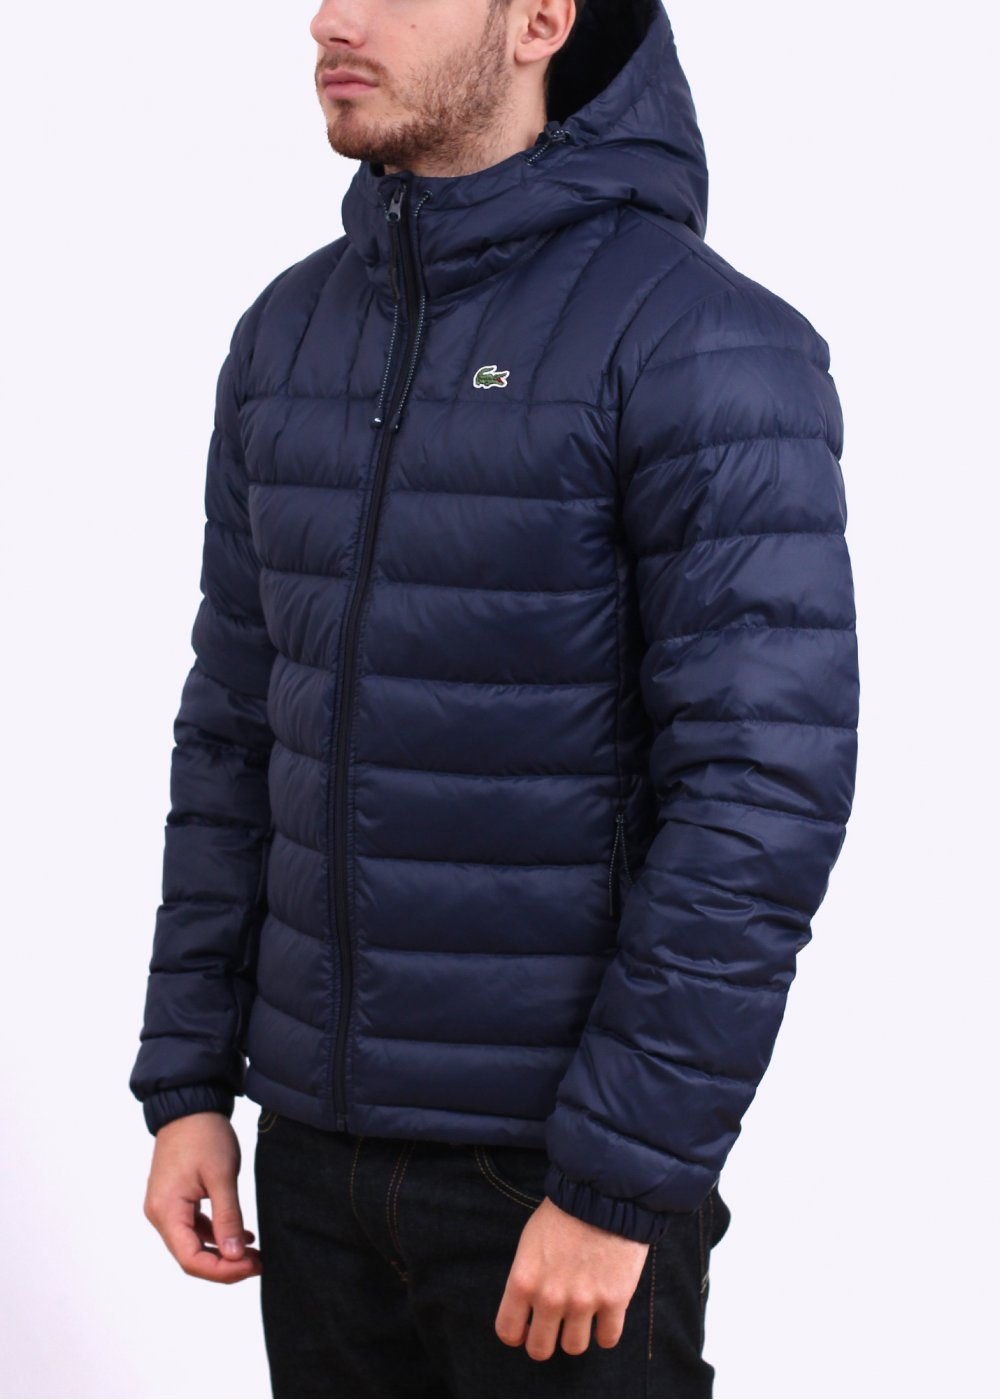 Lacoste Hooded Down Jacket - Marine Navy